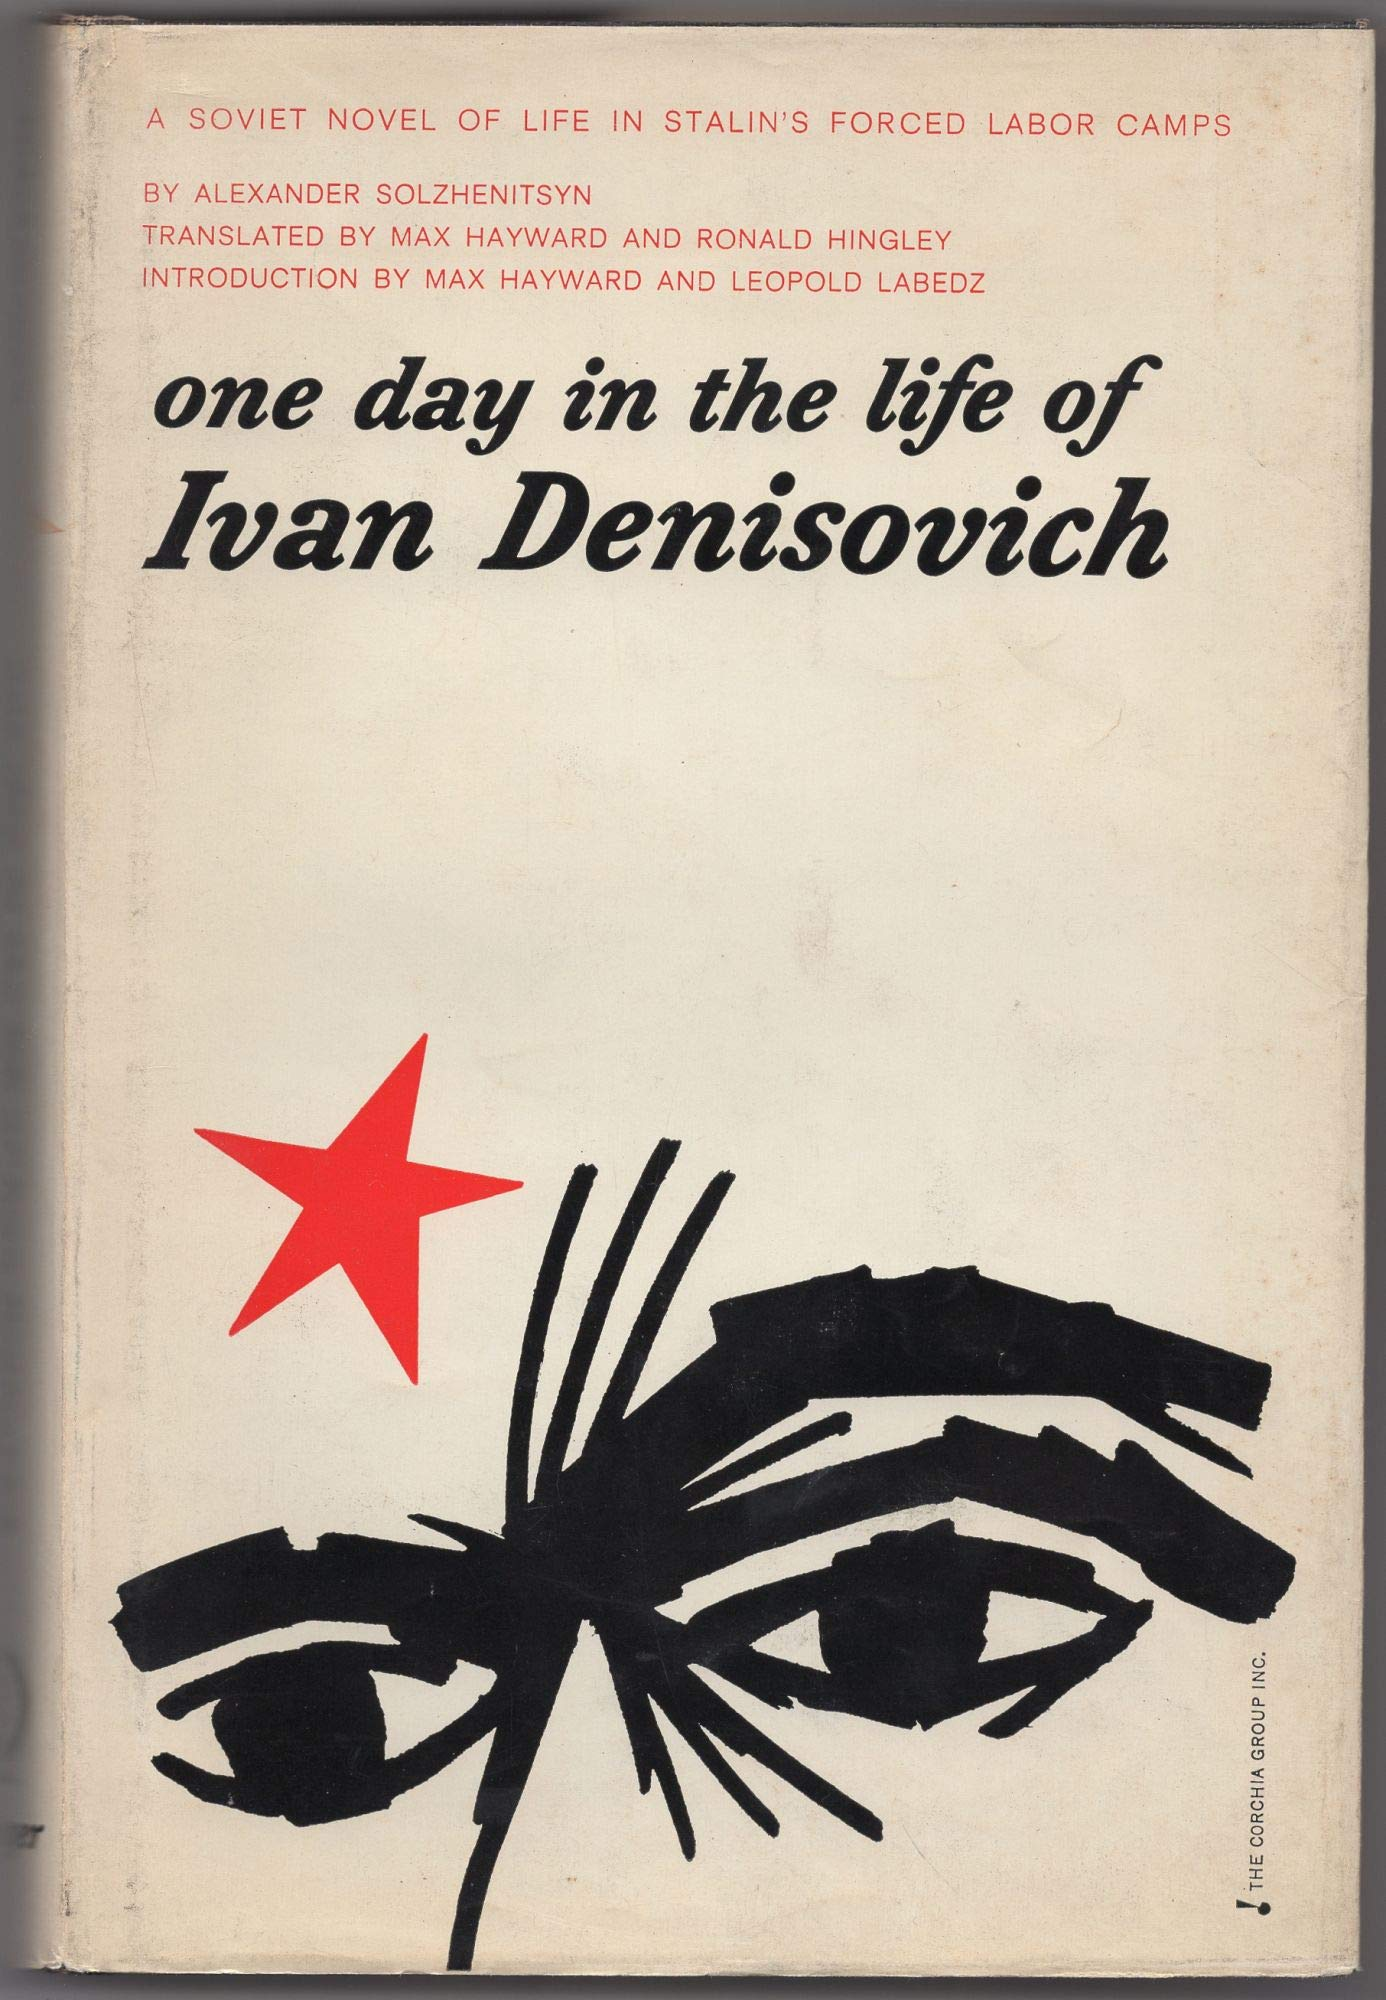 Stalins prison camps as depicted in one day in the life of ivan denisovich